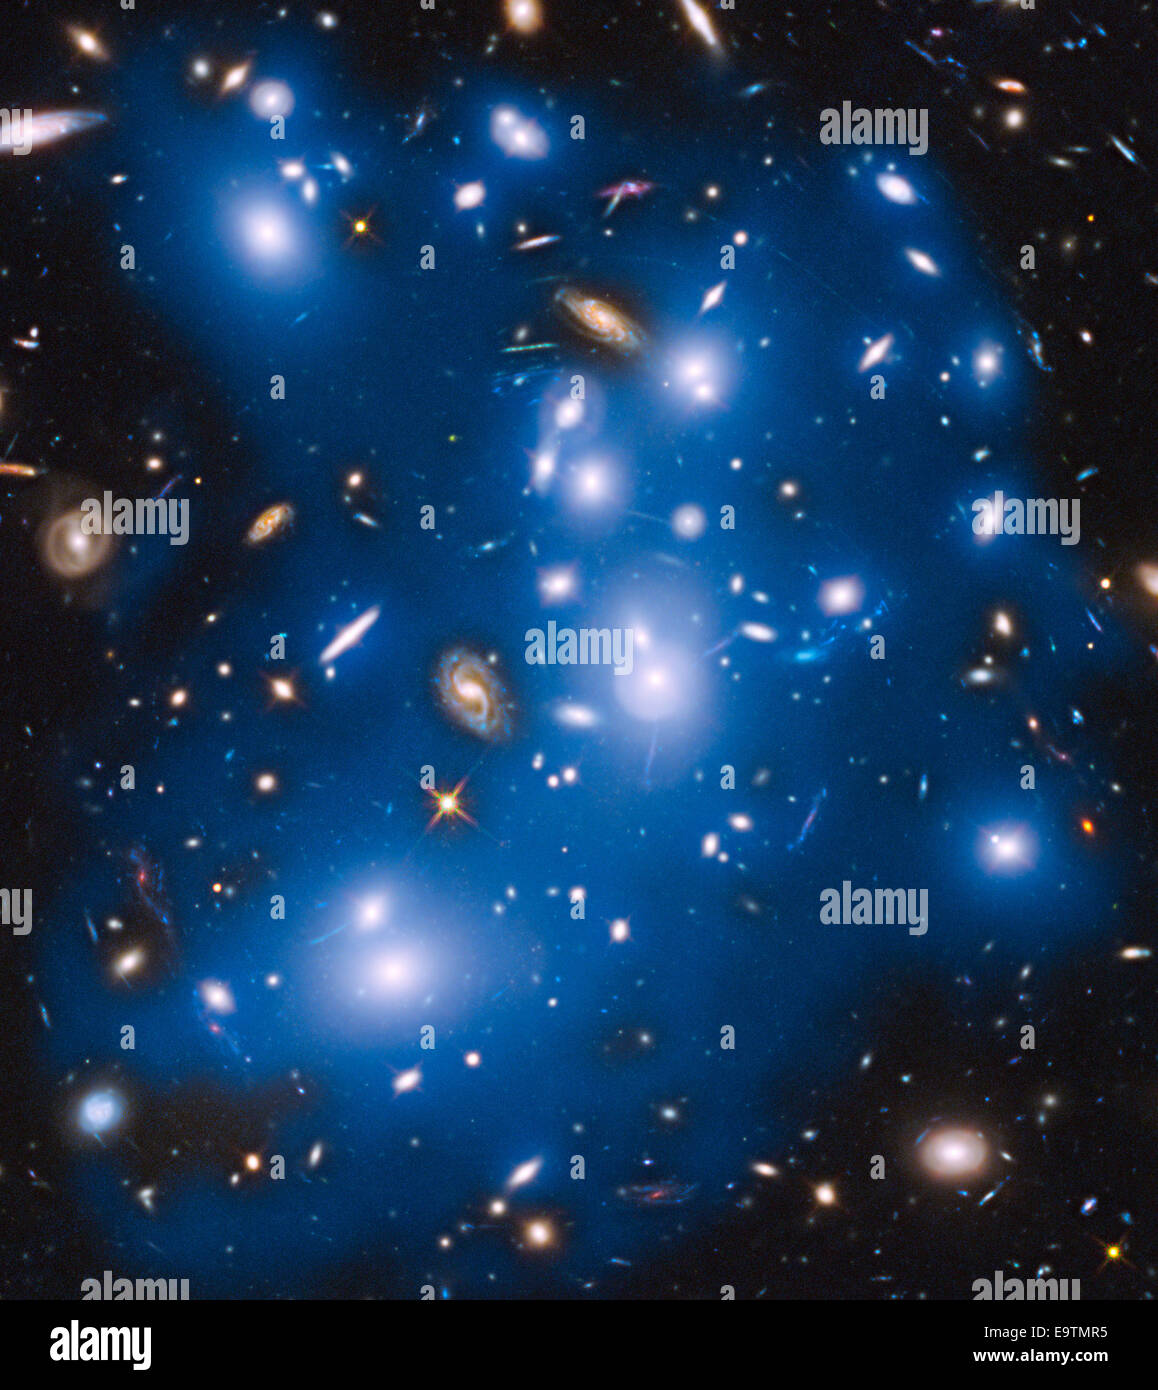 Hubble Sees 'Ghost Light' From Dead Galaxies - Stock Image